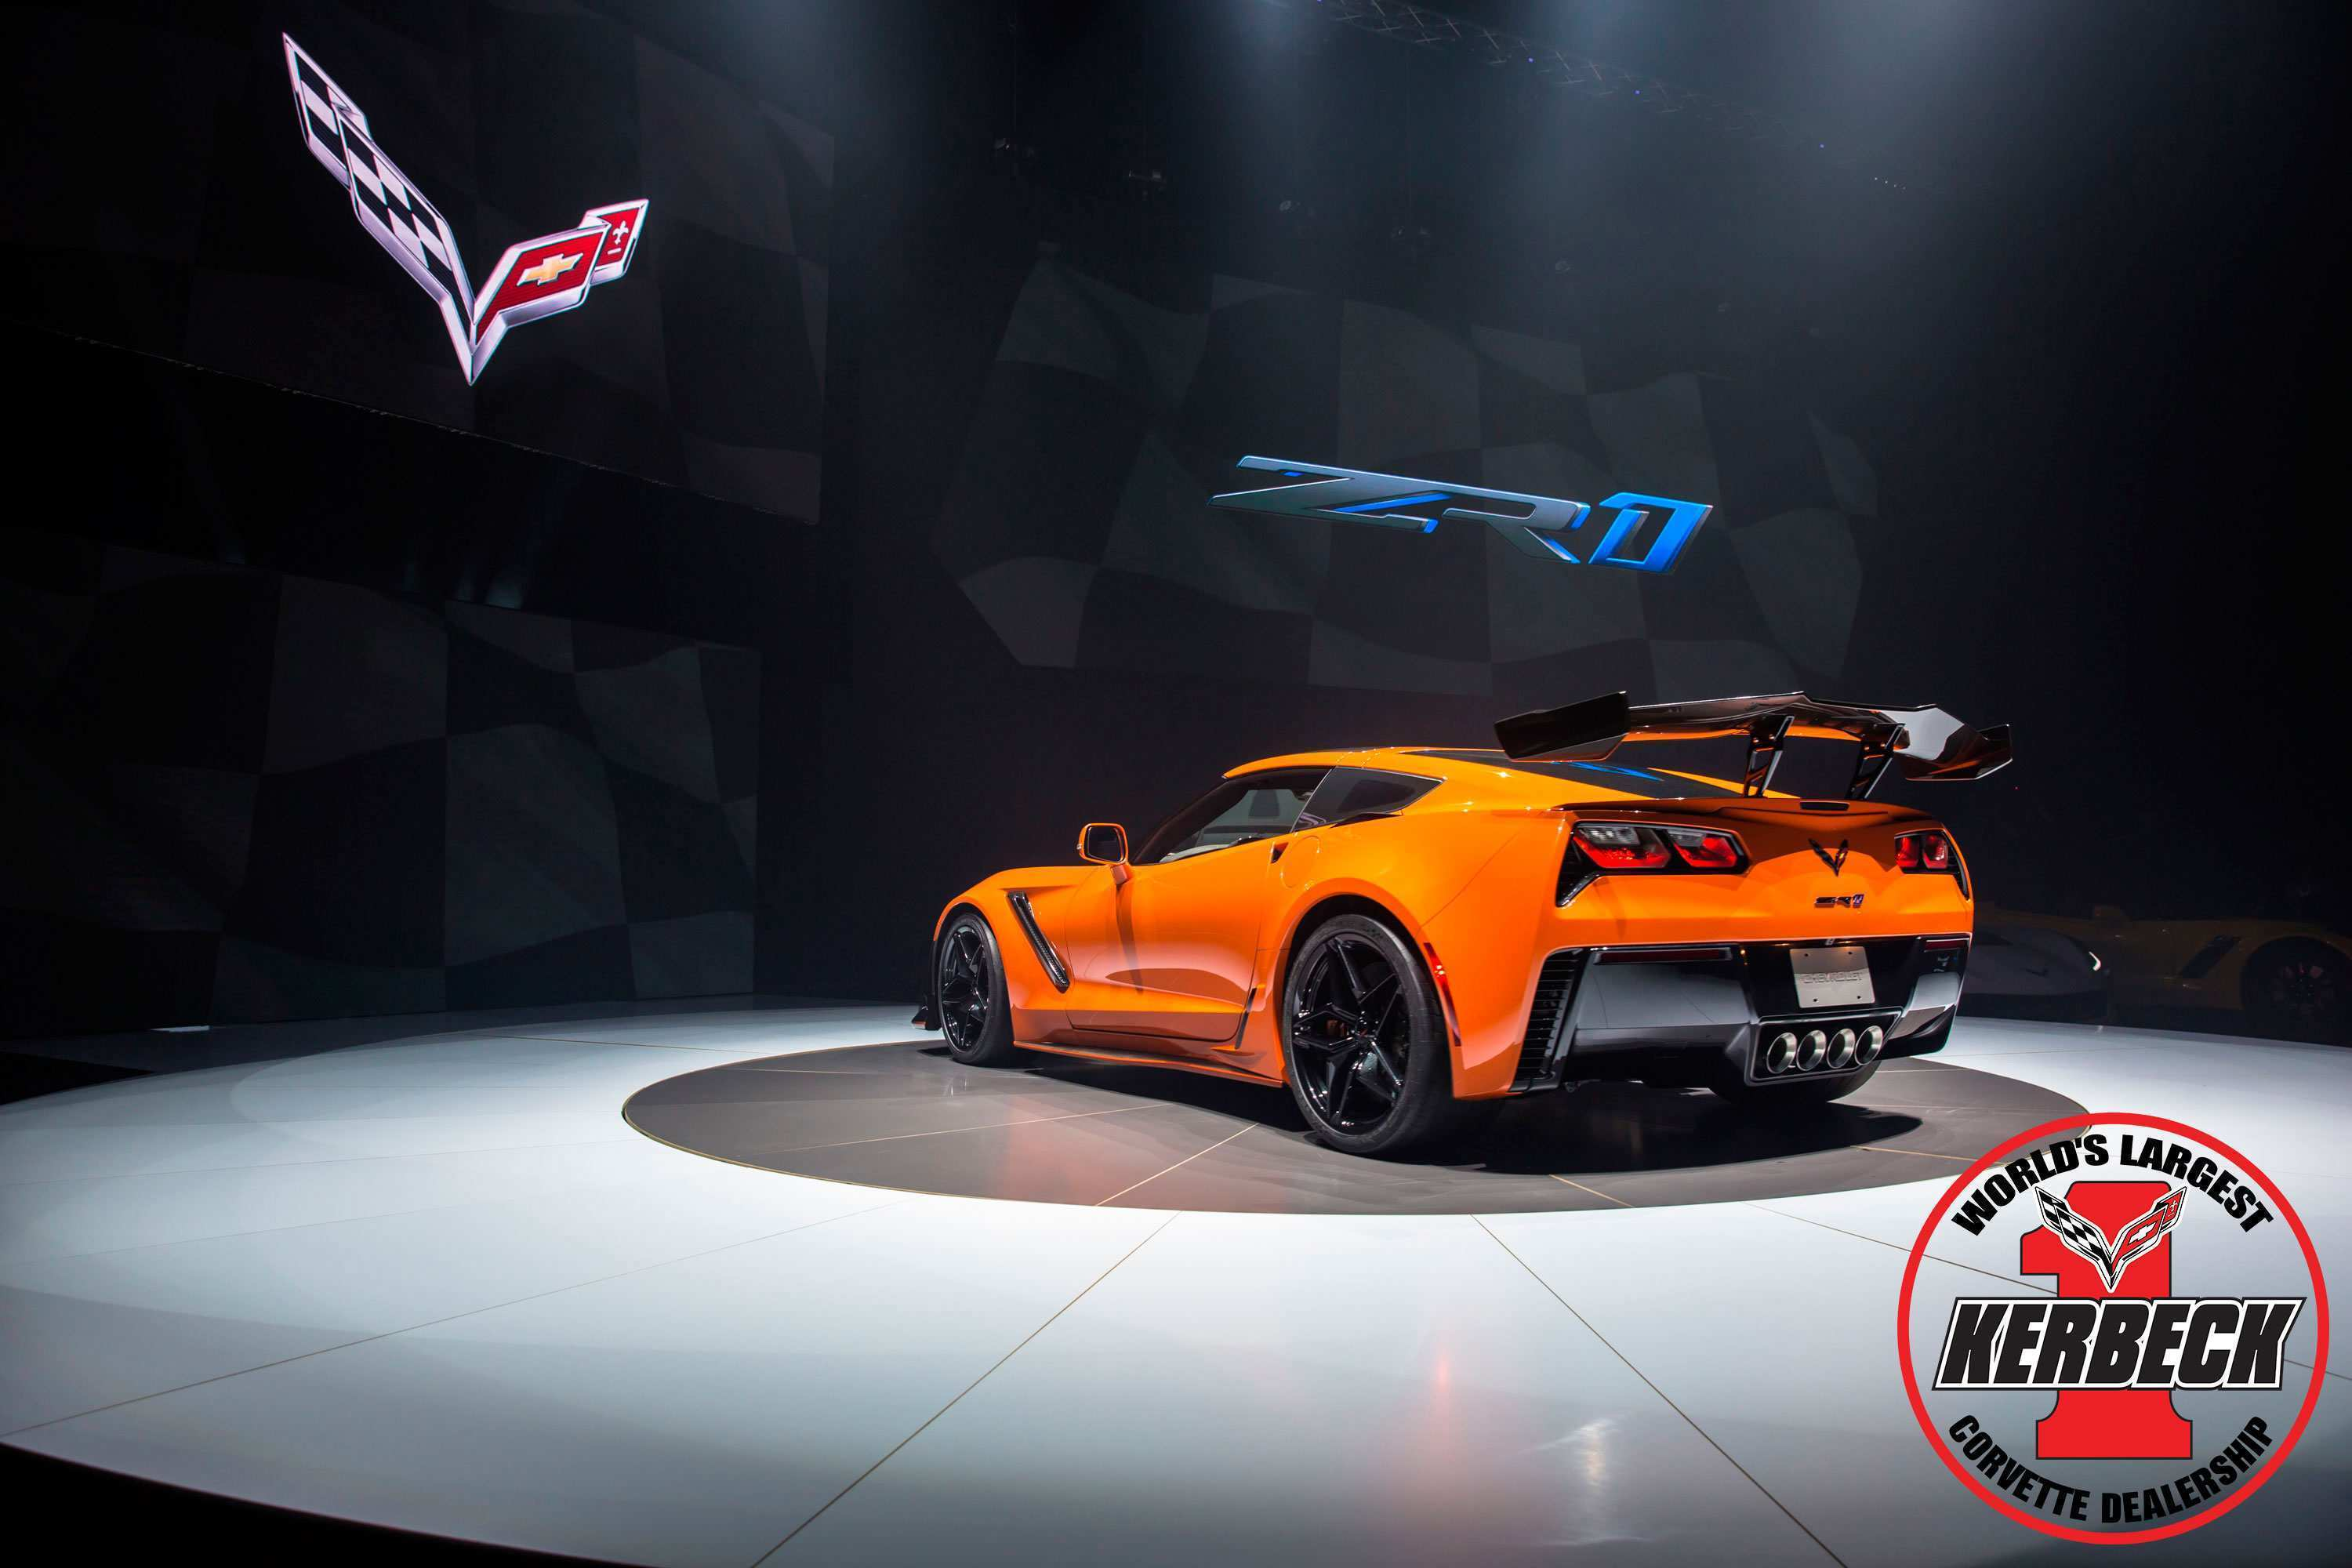 66 Gallery of 2019 Chevrolet Zr1 Price History with 2019 Chevrolet Zr1 Price